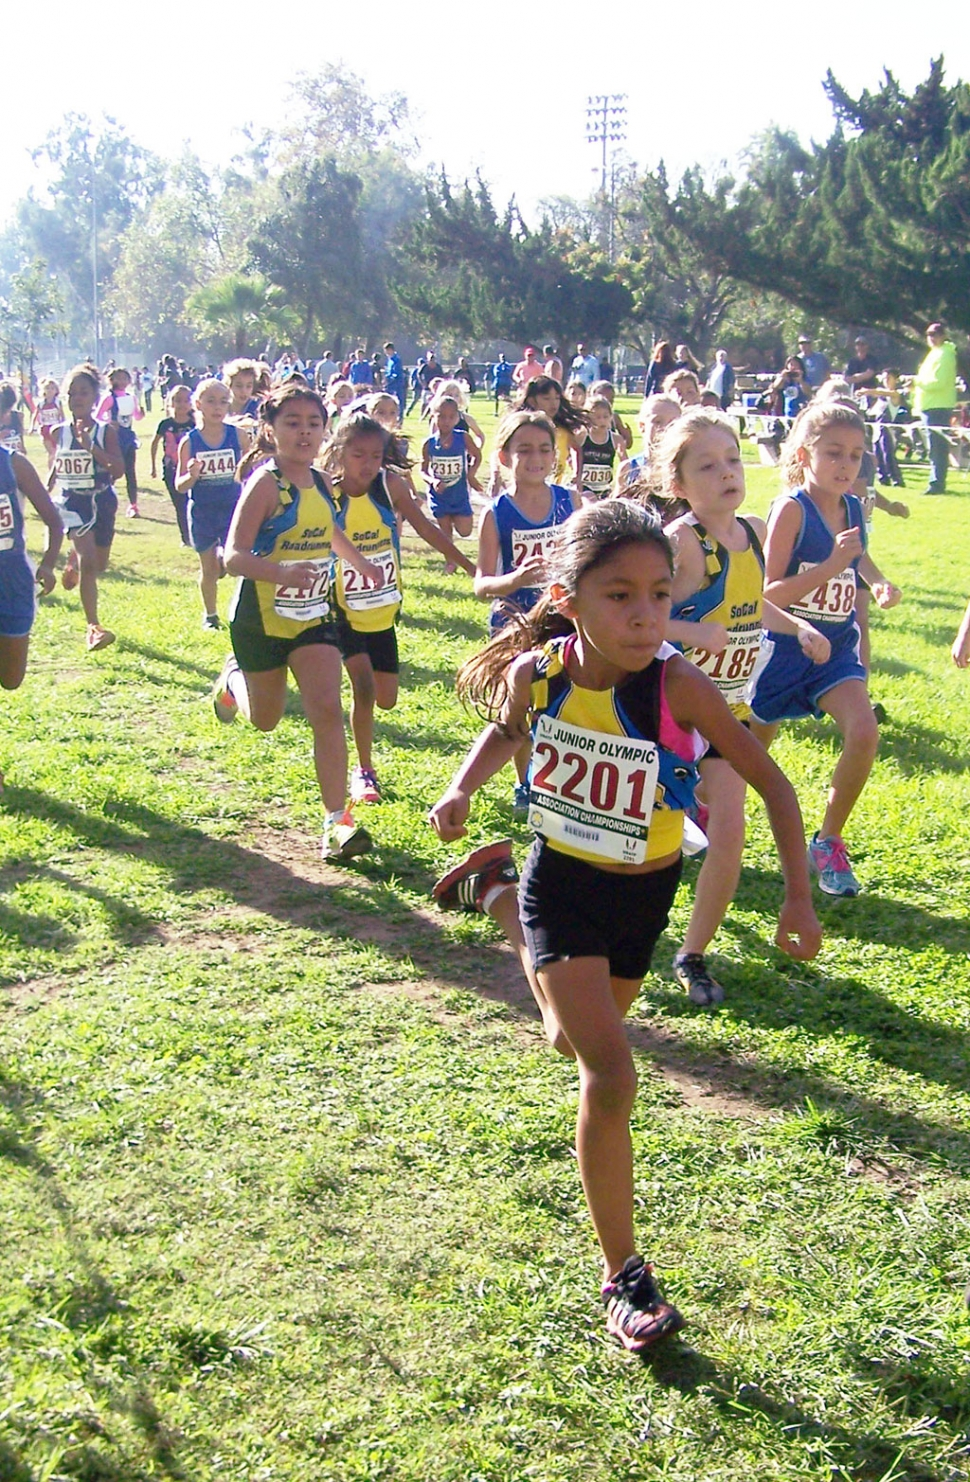 Niza Laureano (bib #2201) leads the pack at the 2014 USATF Southern California Association Junior Olympic Cross Country Championships in Arcadia, California.